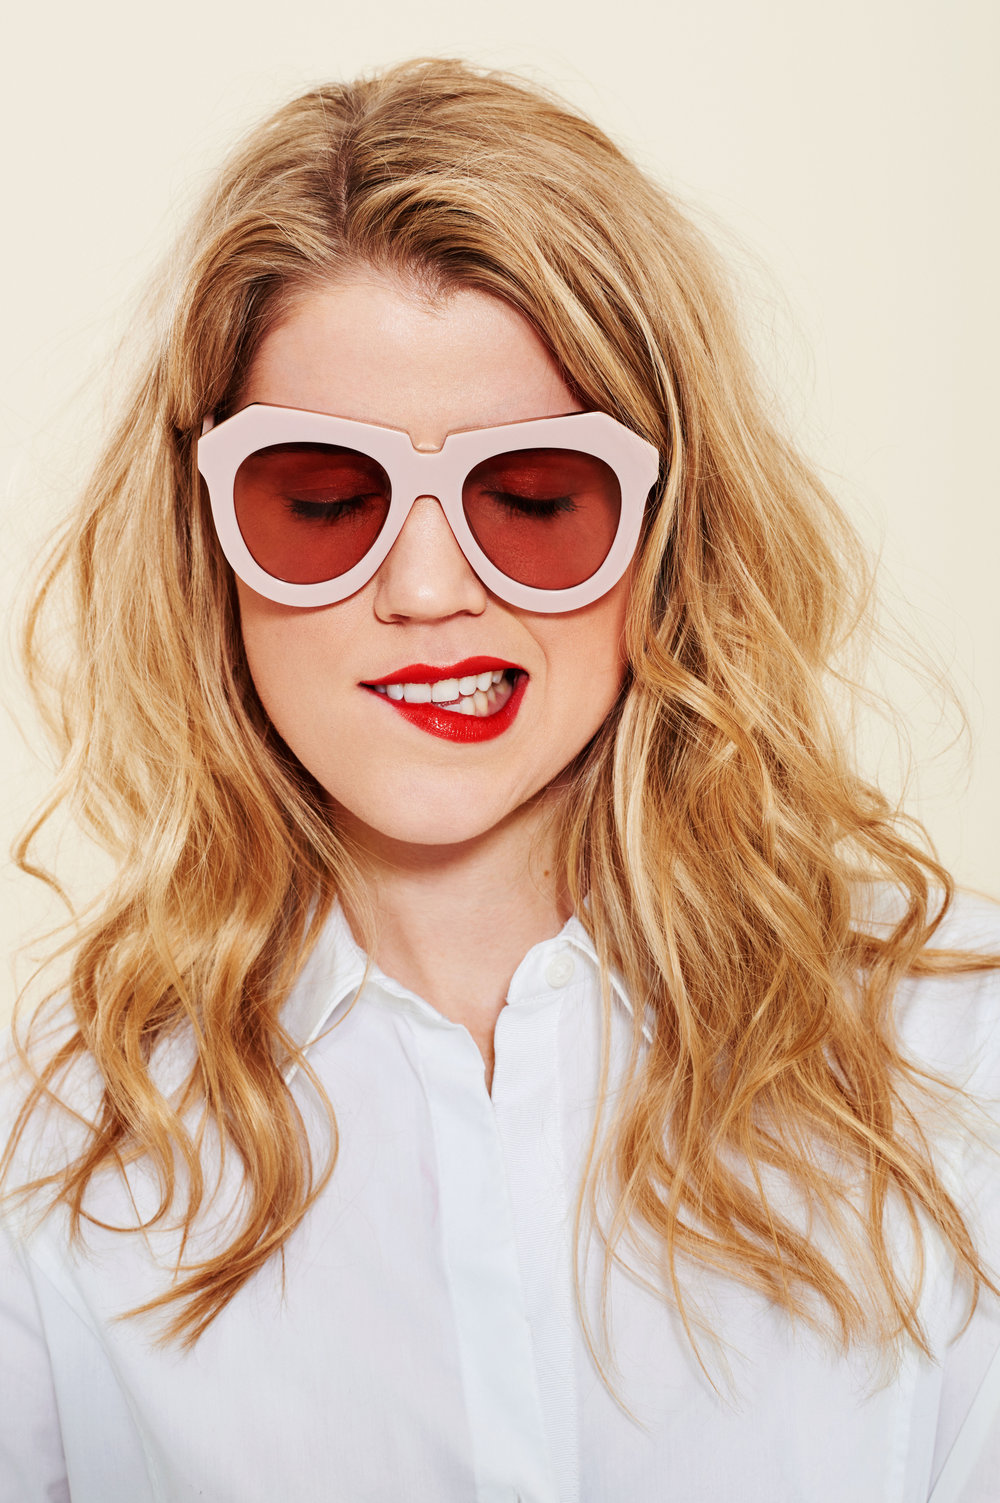 sunglasses-lipsticks-05.w4500.h6760.jpg